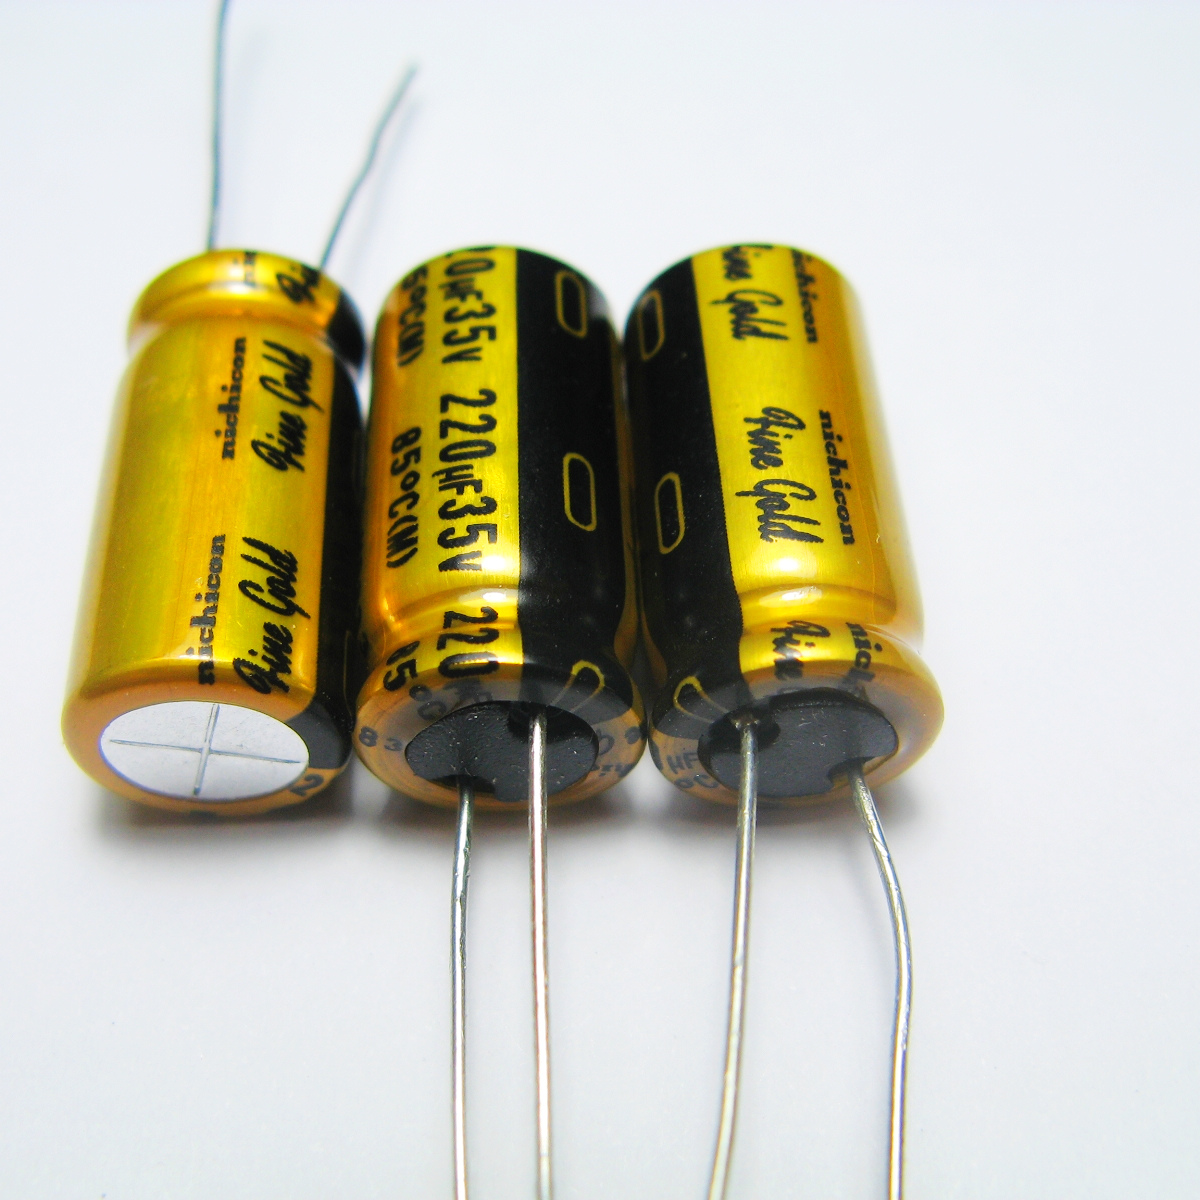 10pcs 20pcs The original NICHICON FG 35v220uf copper feet audio super capacitor electrolytic capacitors free shipping in Capacitors from Electronic Components Supplies